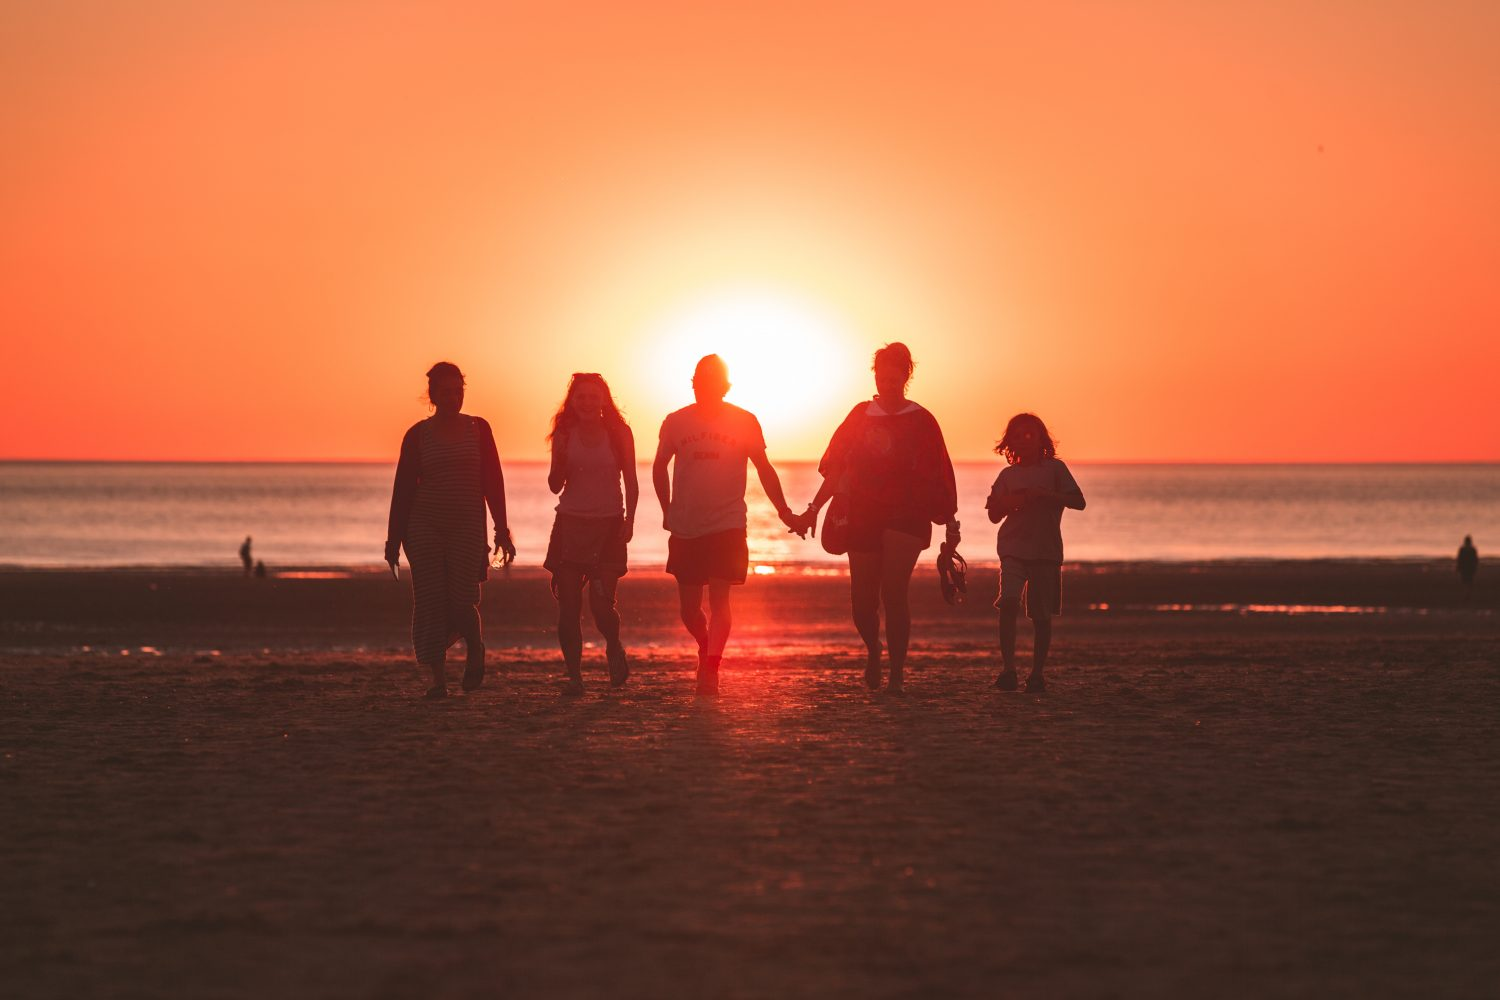 silhouette photo of five person walking on seashore during sunset